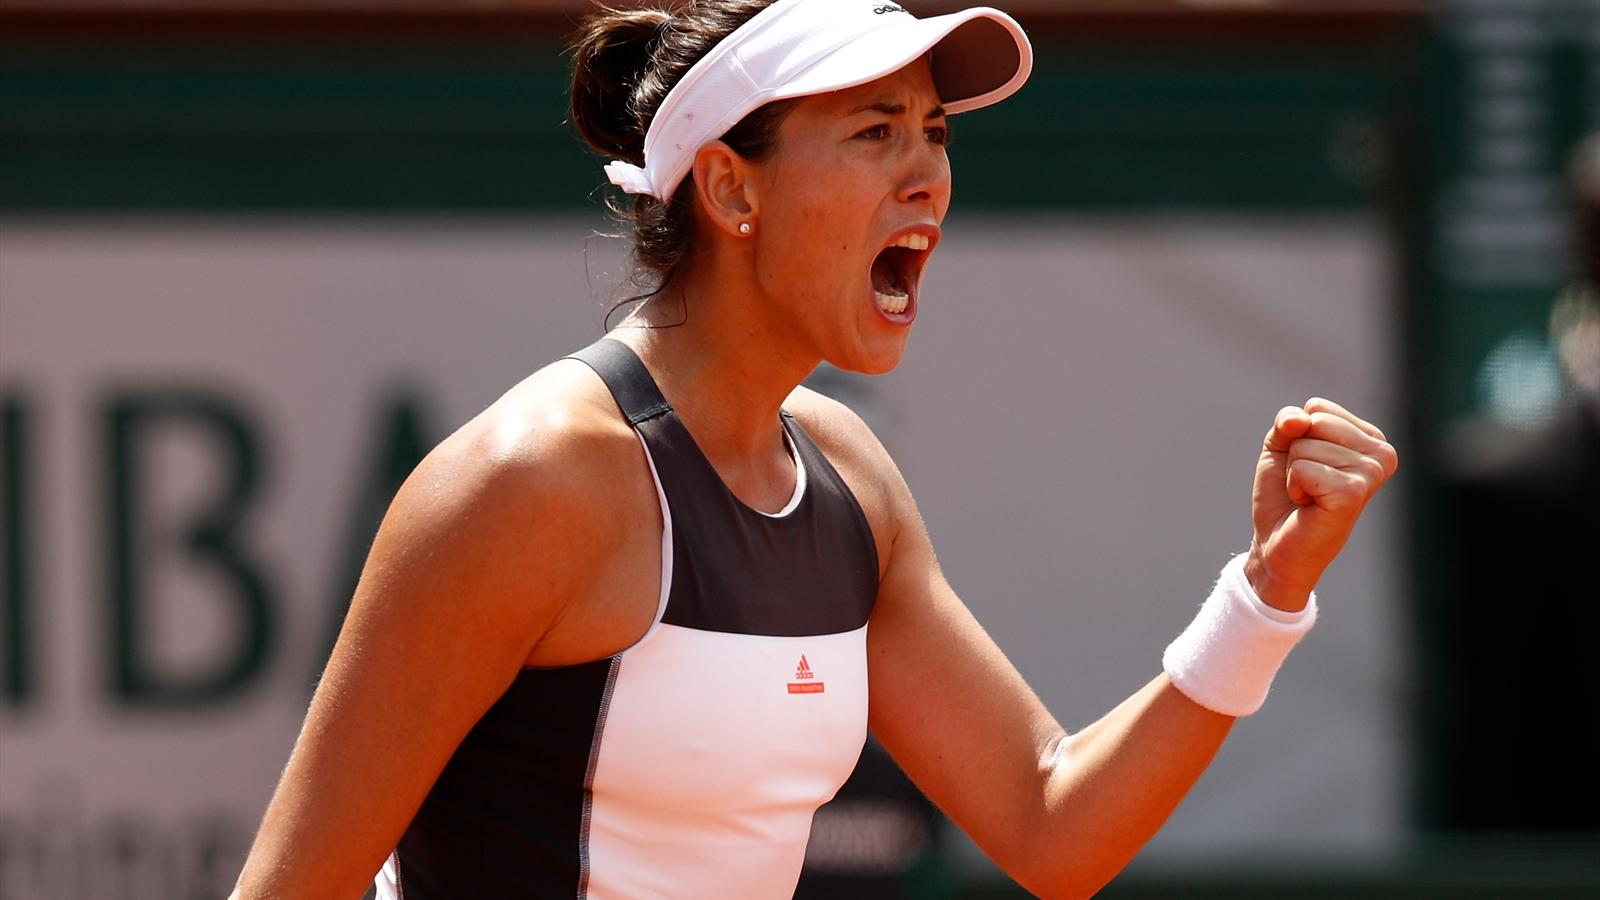 Garbiñe Muguruza - Player Profile - Tennis - Eurosport UK